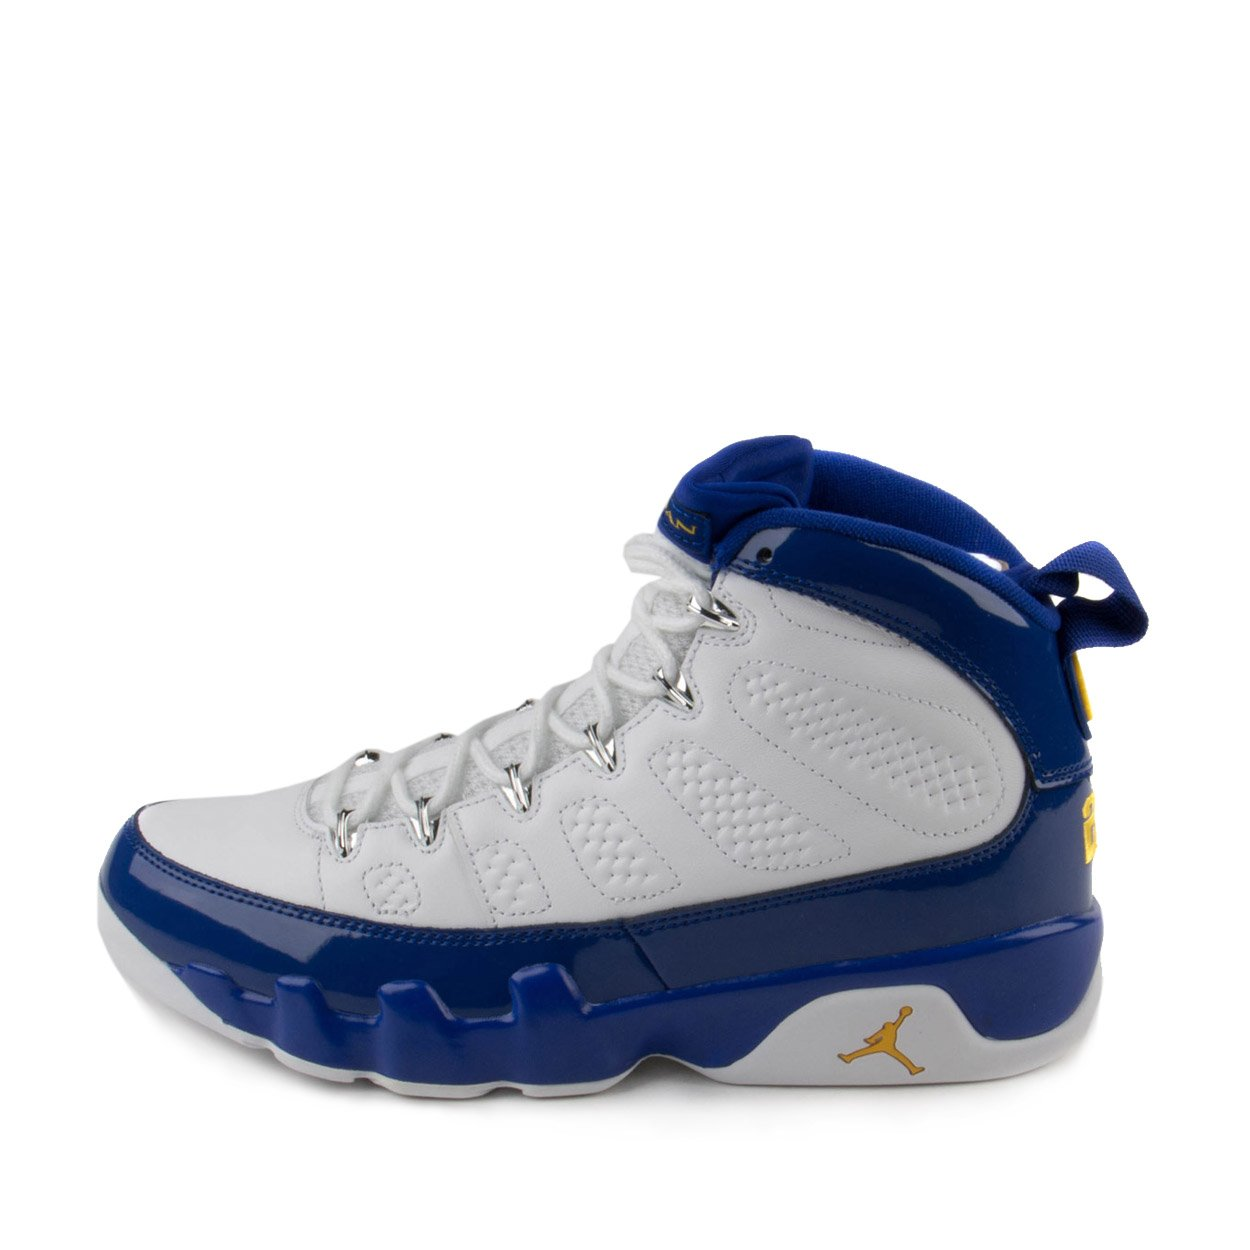 08c9489181306b Galleon - Nike Mens Air Jordan 9 Retro White Tour Yellow-Concord Leather  Size 9